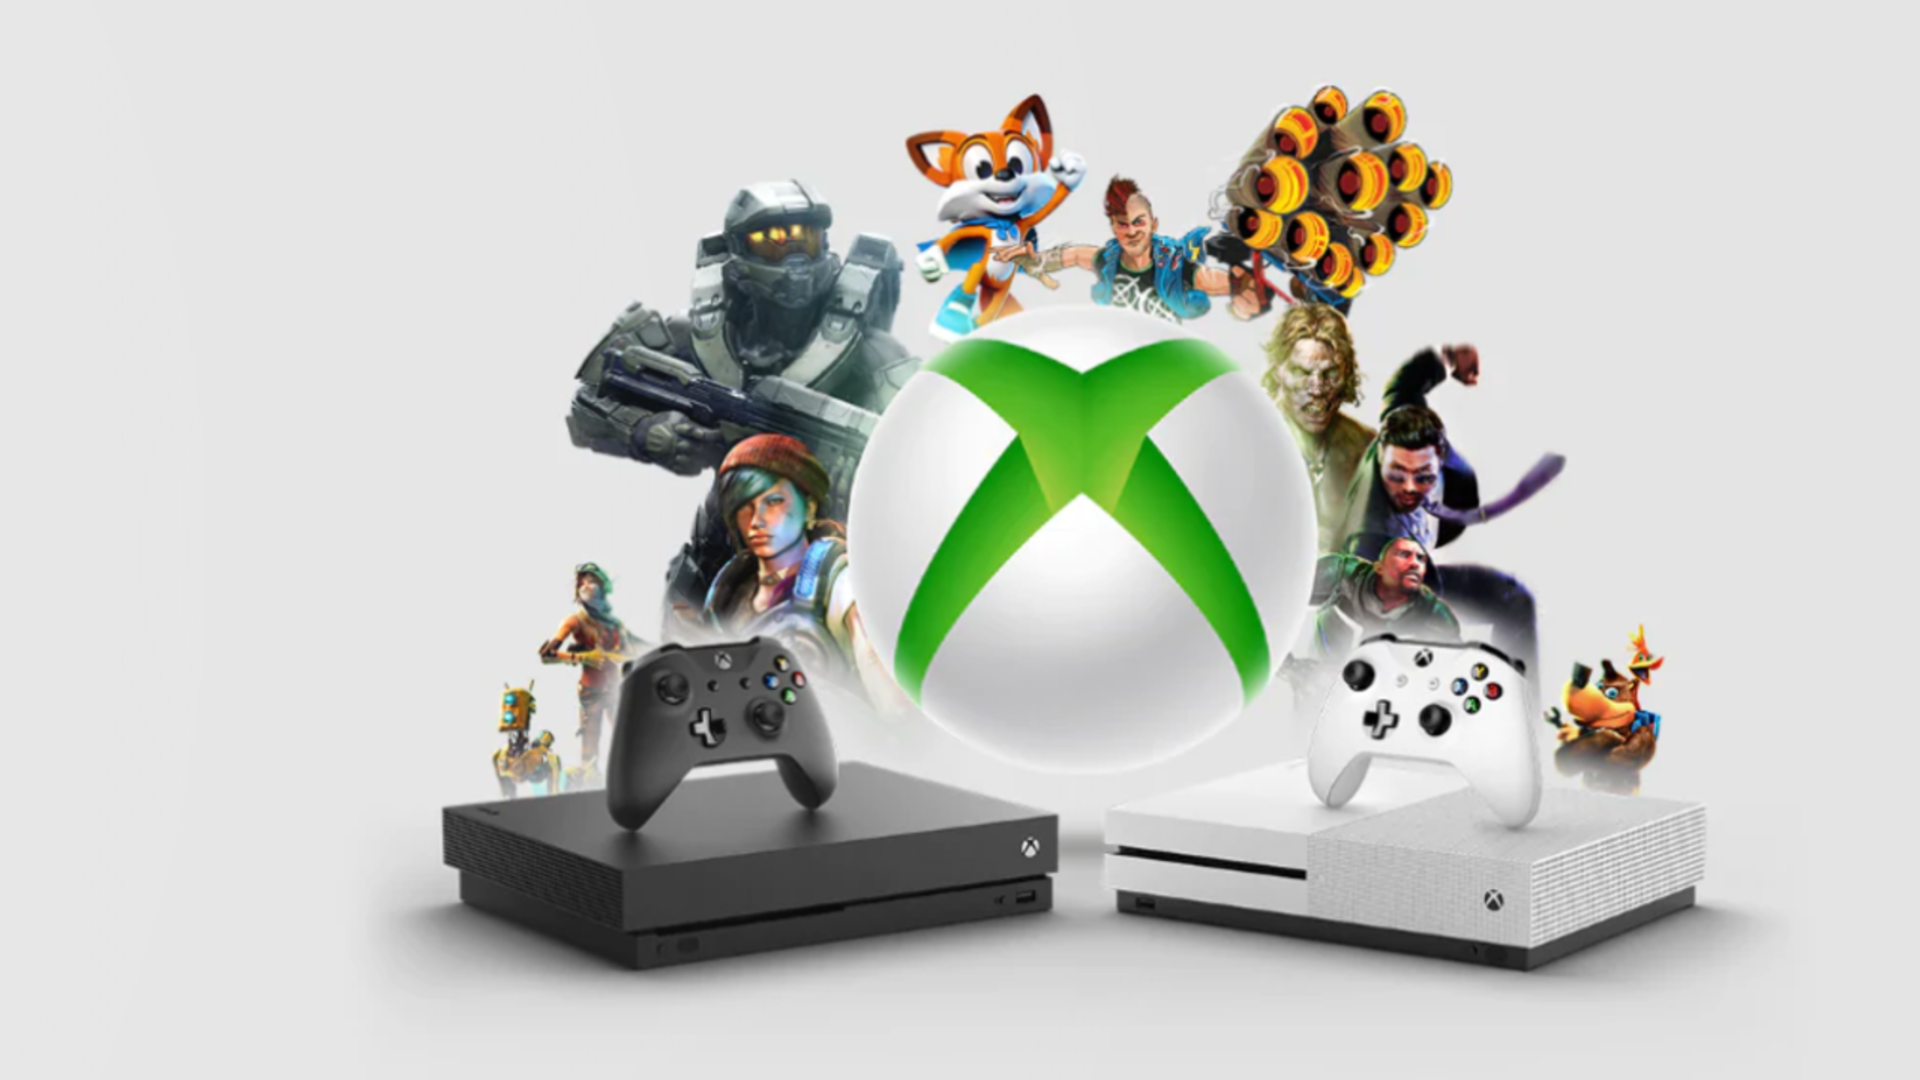 Xbox All Access Announced Get A One Game Pass And Gold On Monthly Plan Gaming GamingNews Gamingnews Microsoft